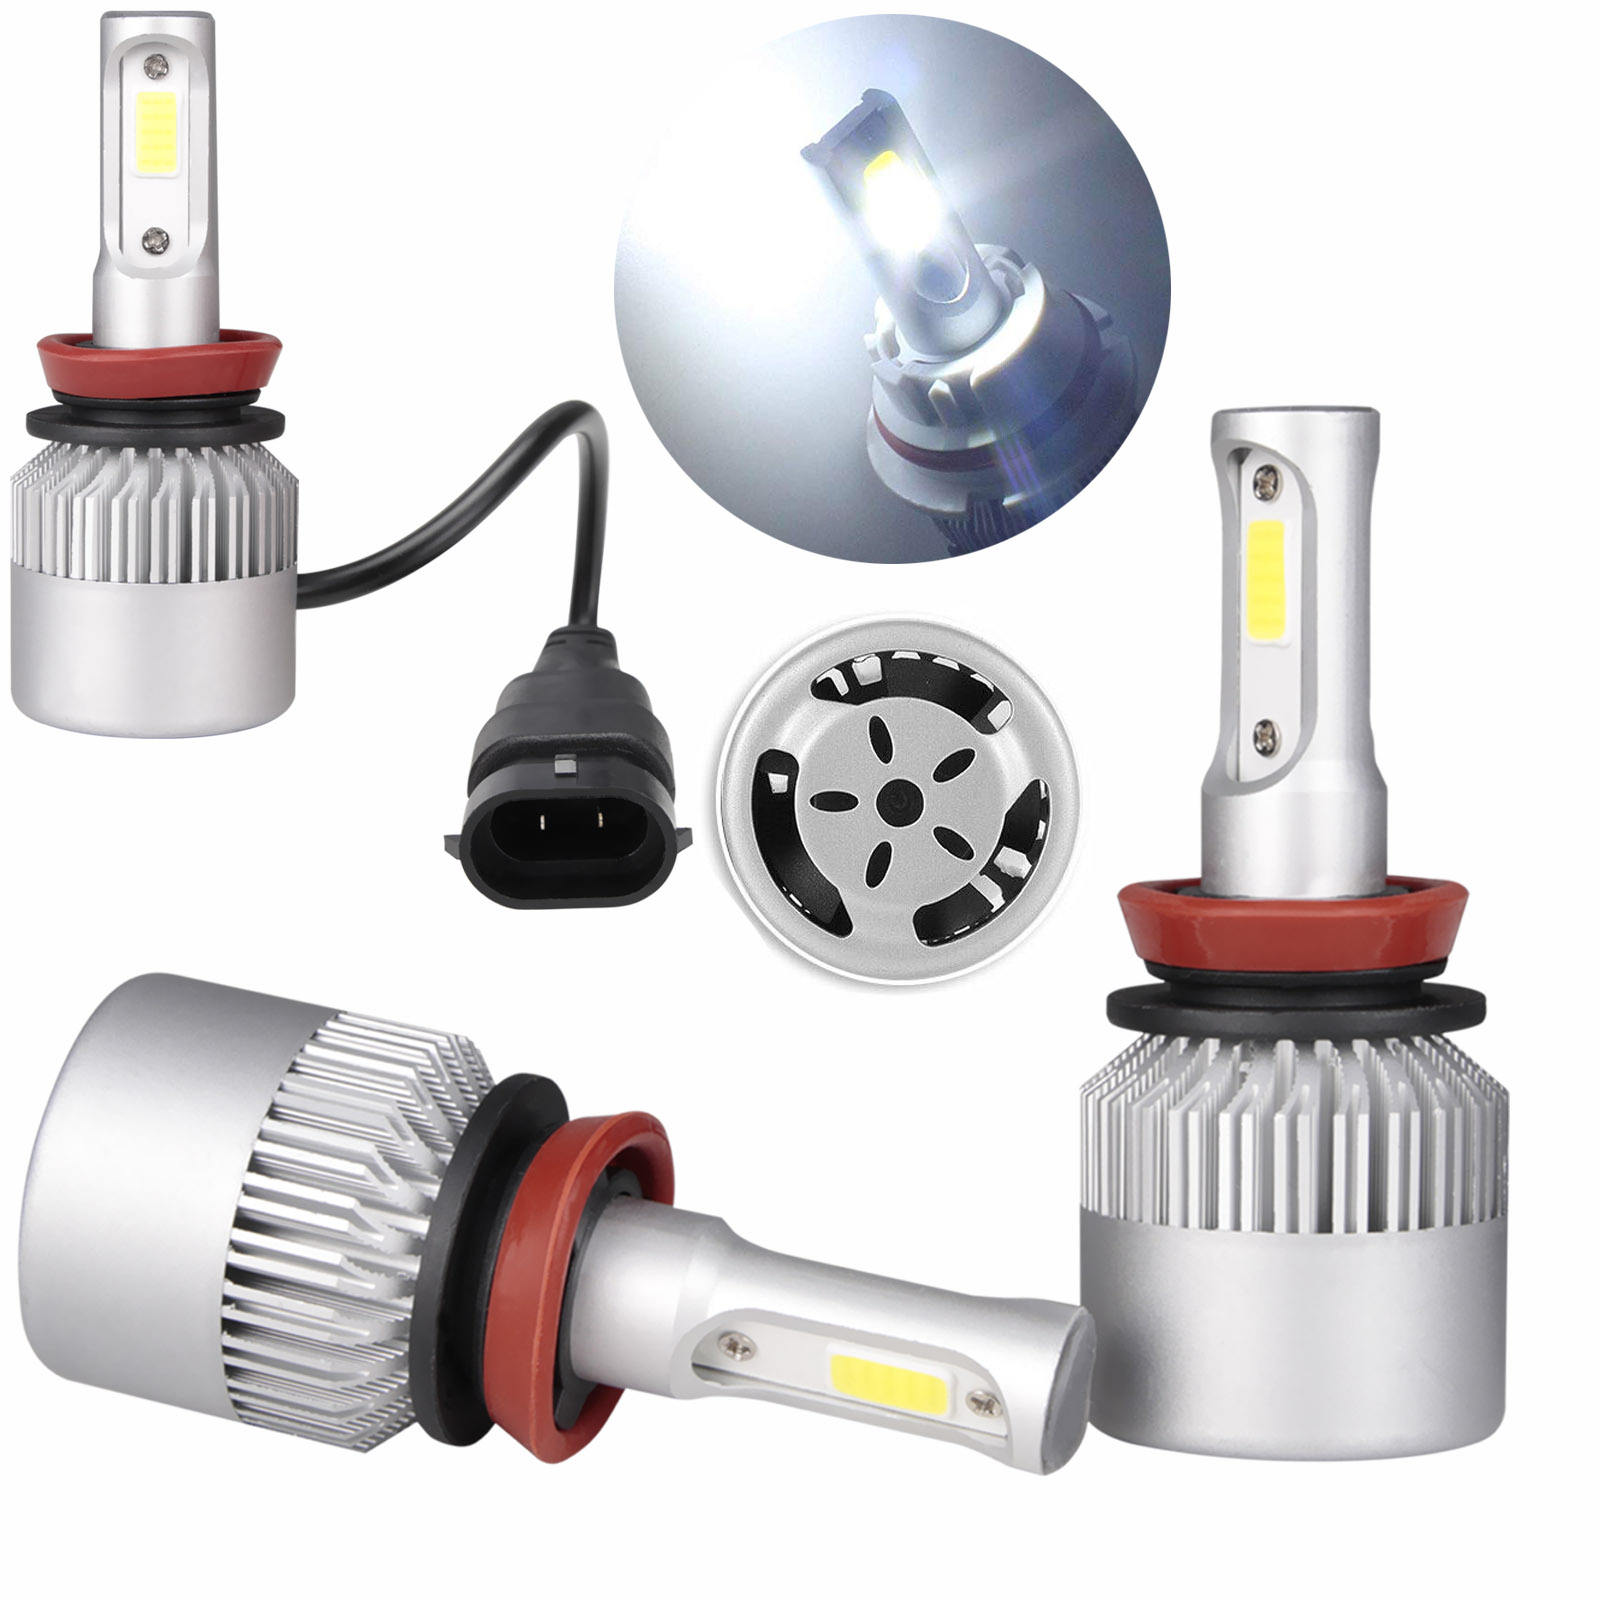 Waterproof LED Headlight Bulbs H8 H9 H1 Conversion Kit 6000K 36W COB High Power Lamp For Auto Lighting System